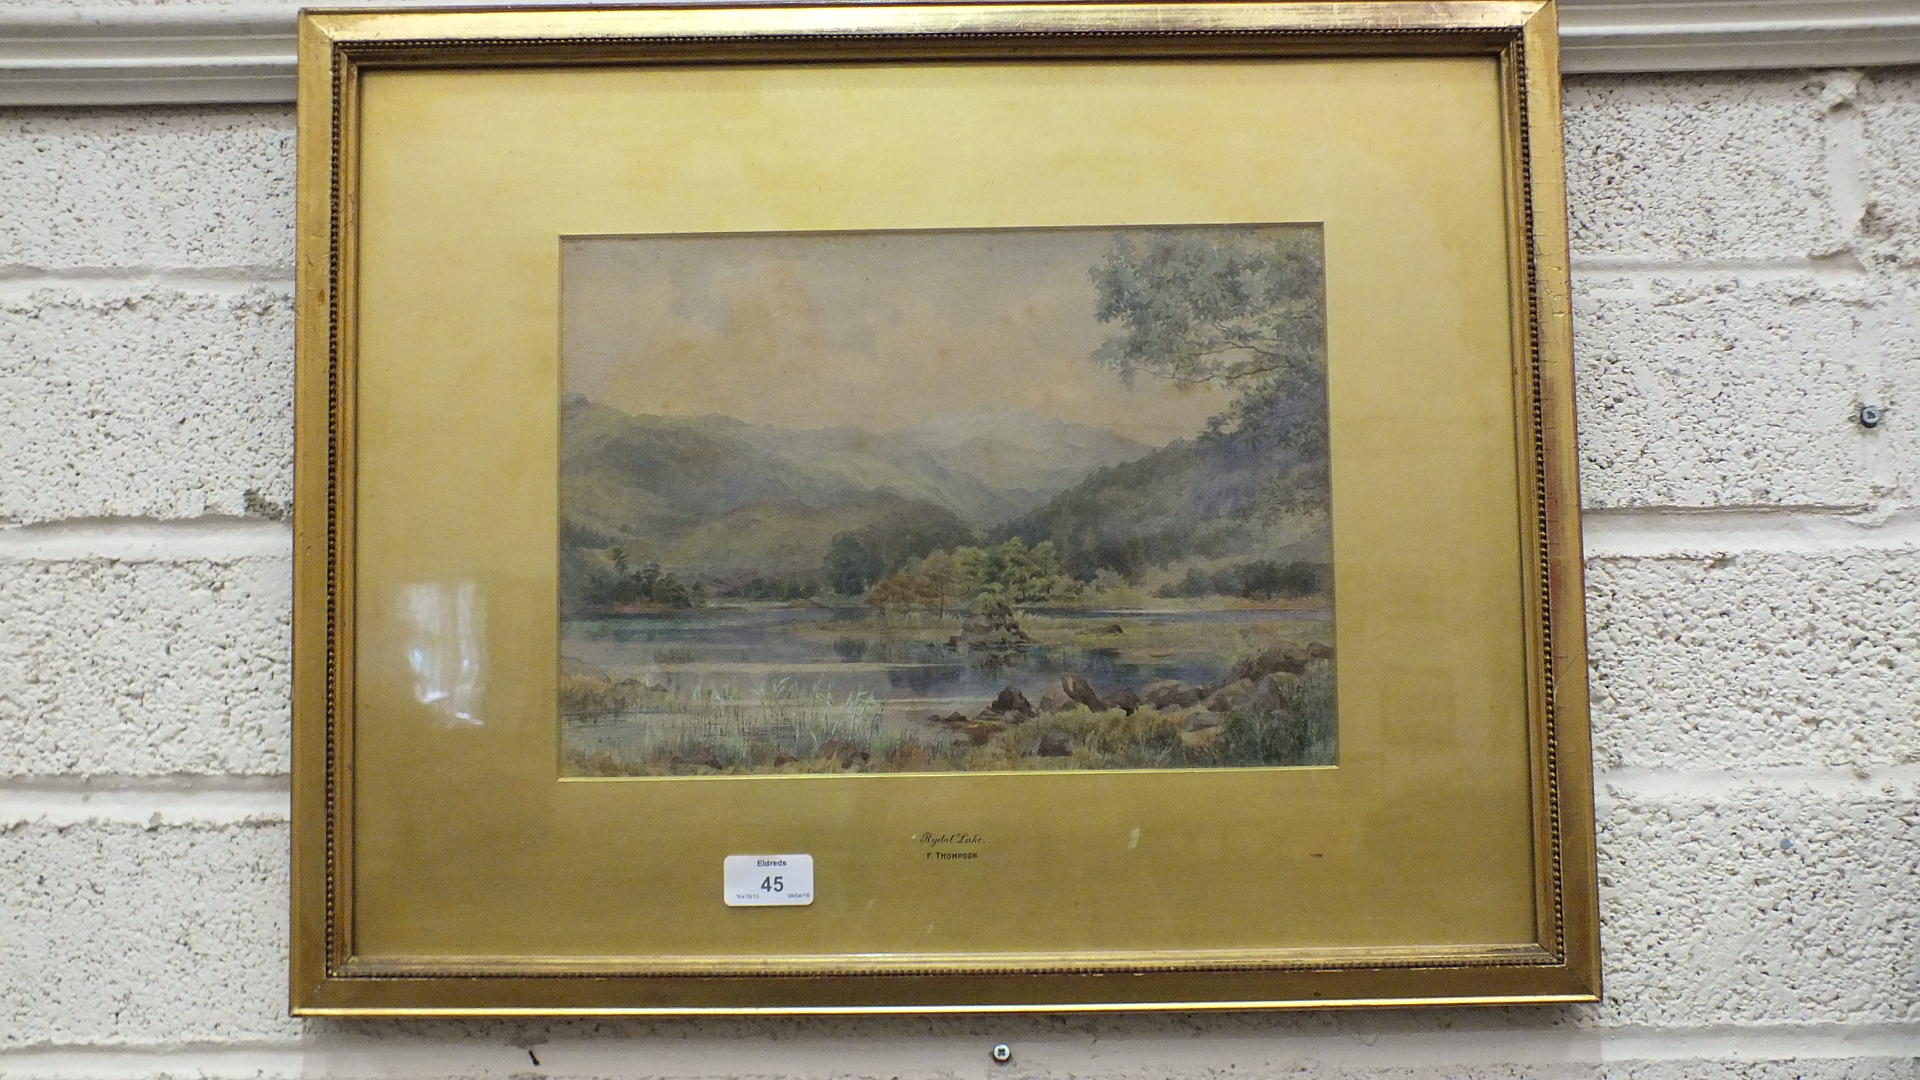 Lot 45 - F Thompson, Rydale Lake, watercolour, inscribed on mount, 24 x 33cm, another, Hannaford, Beach